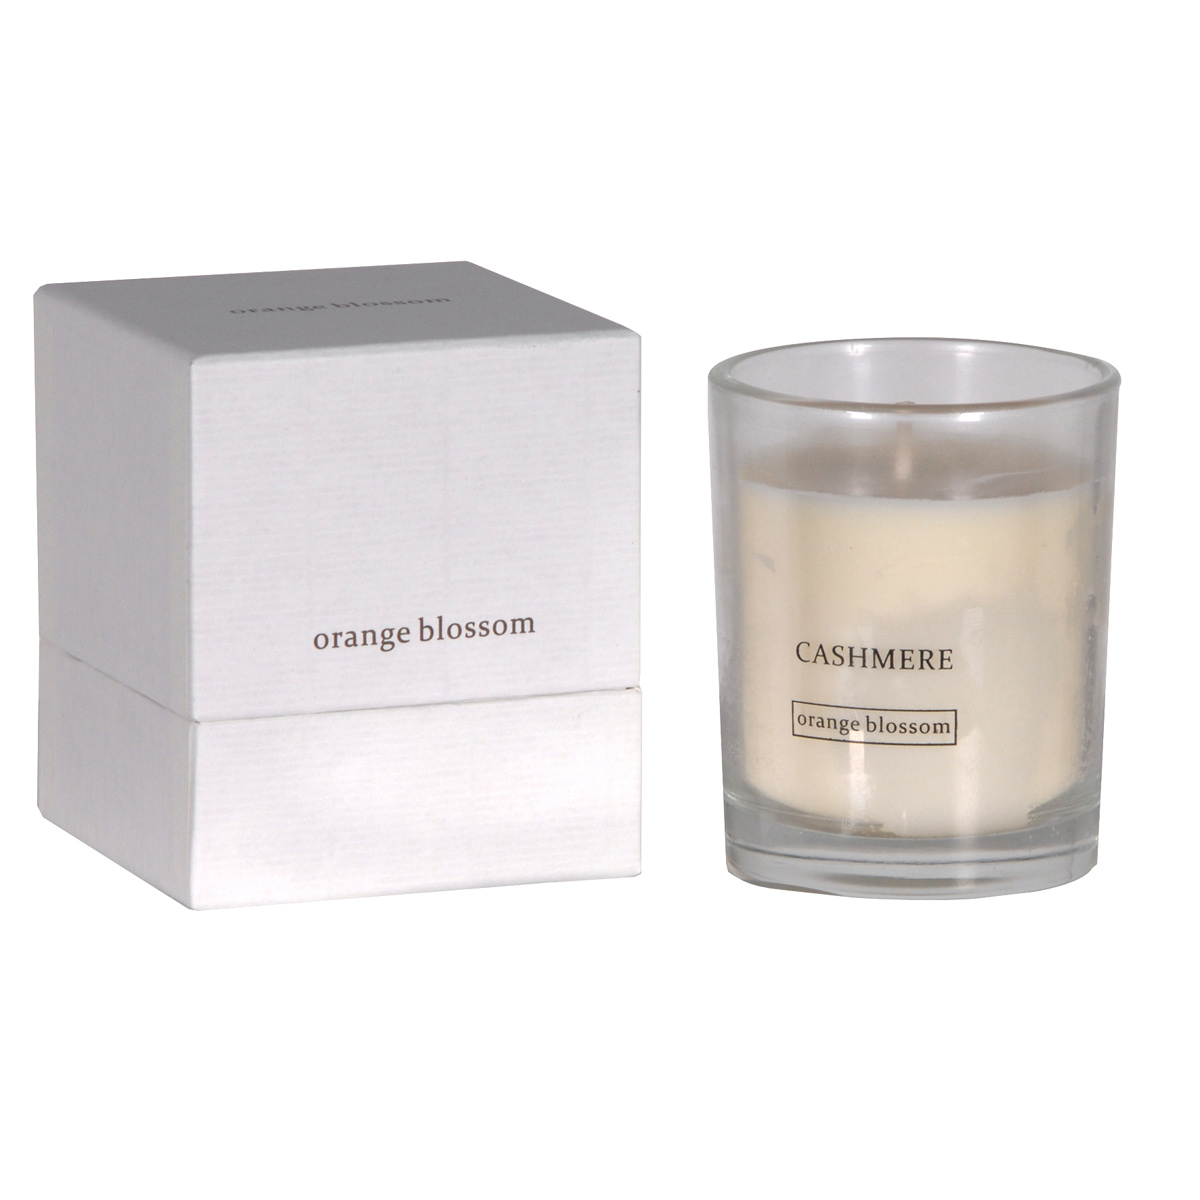 Scented candles fragrances perfect gift french for Aroma candle and scent company